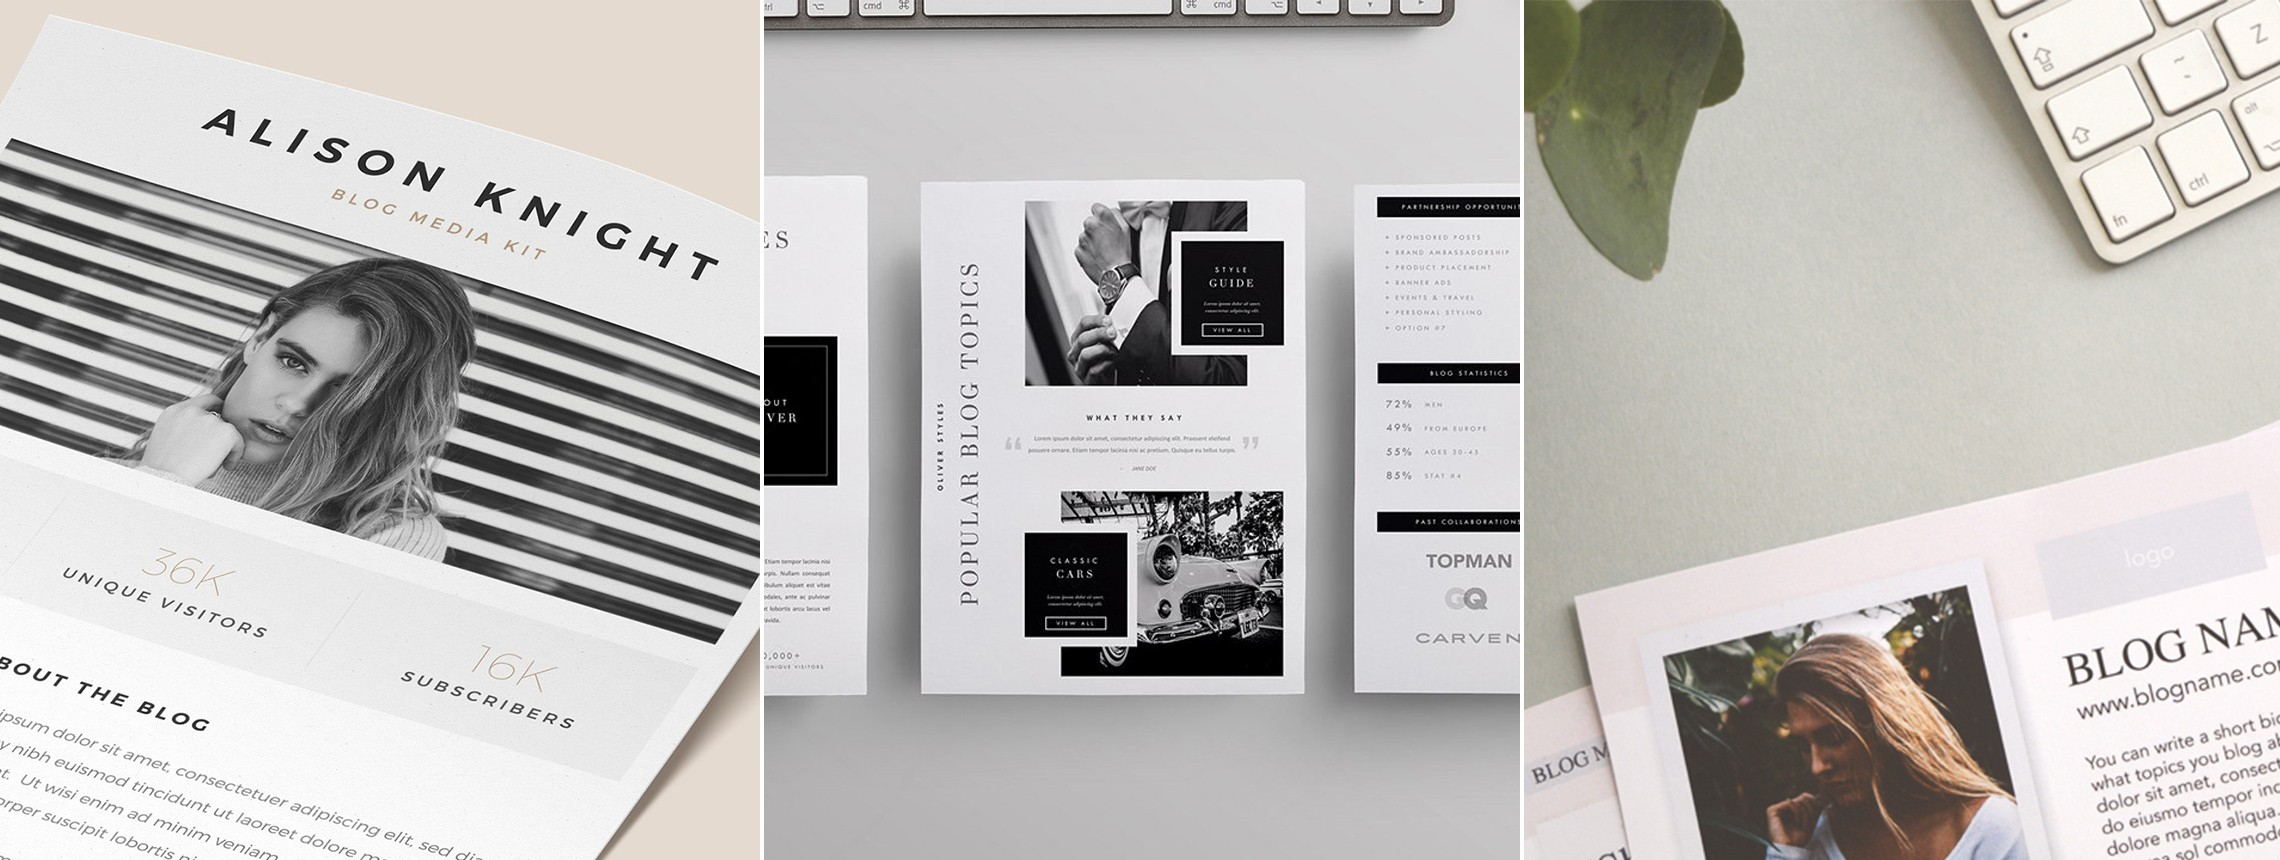 22 Free Media Kit Templates to Pitch Your Brand